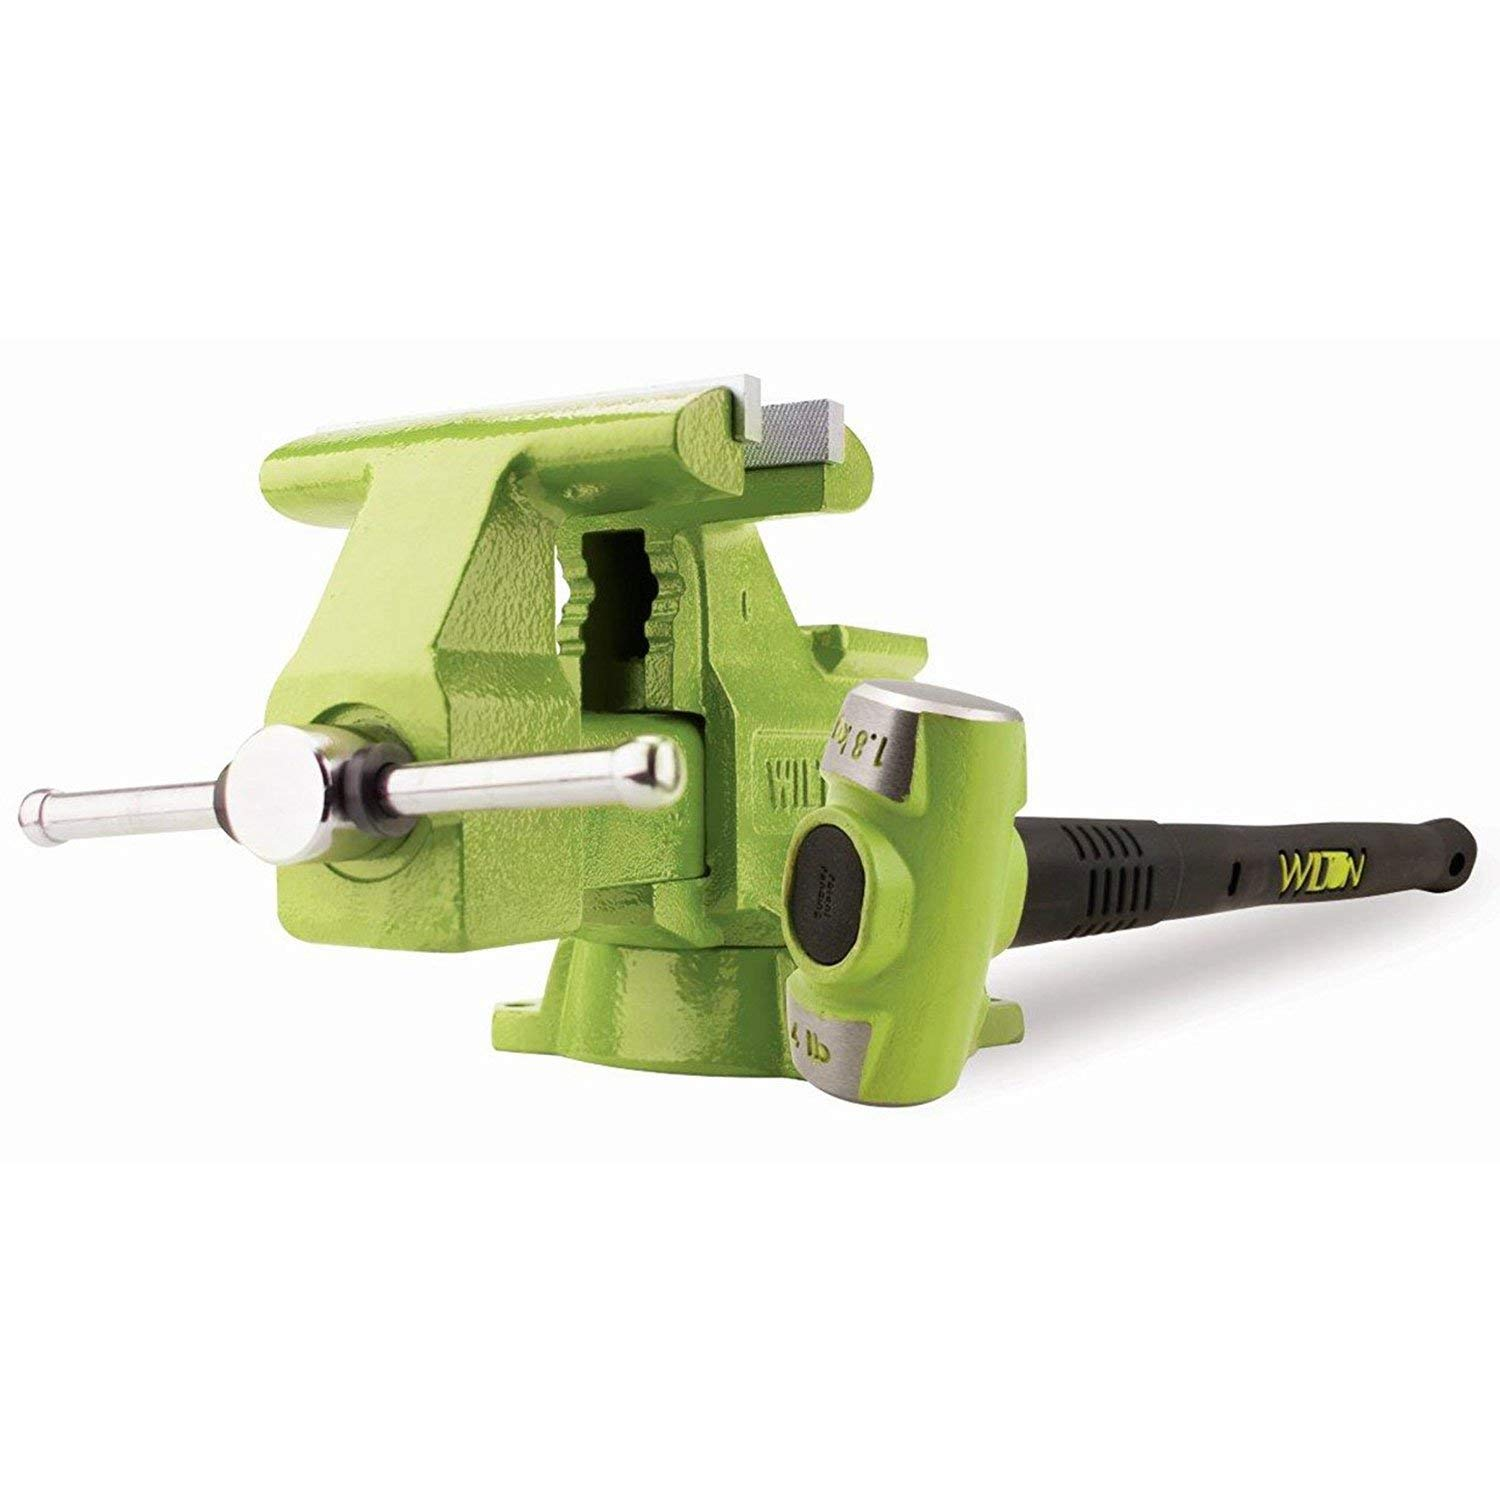 BASH 6.5'' Vise Combo with 4LB Hammer BASH 6.5'' Vise Combo with 4LB Hammer